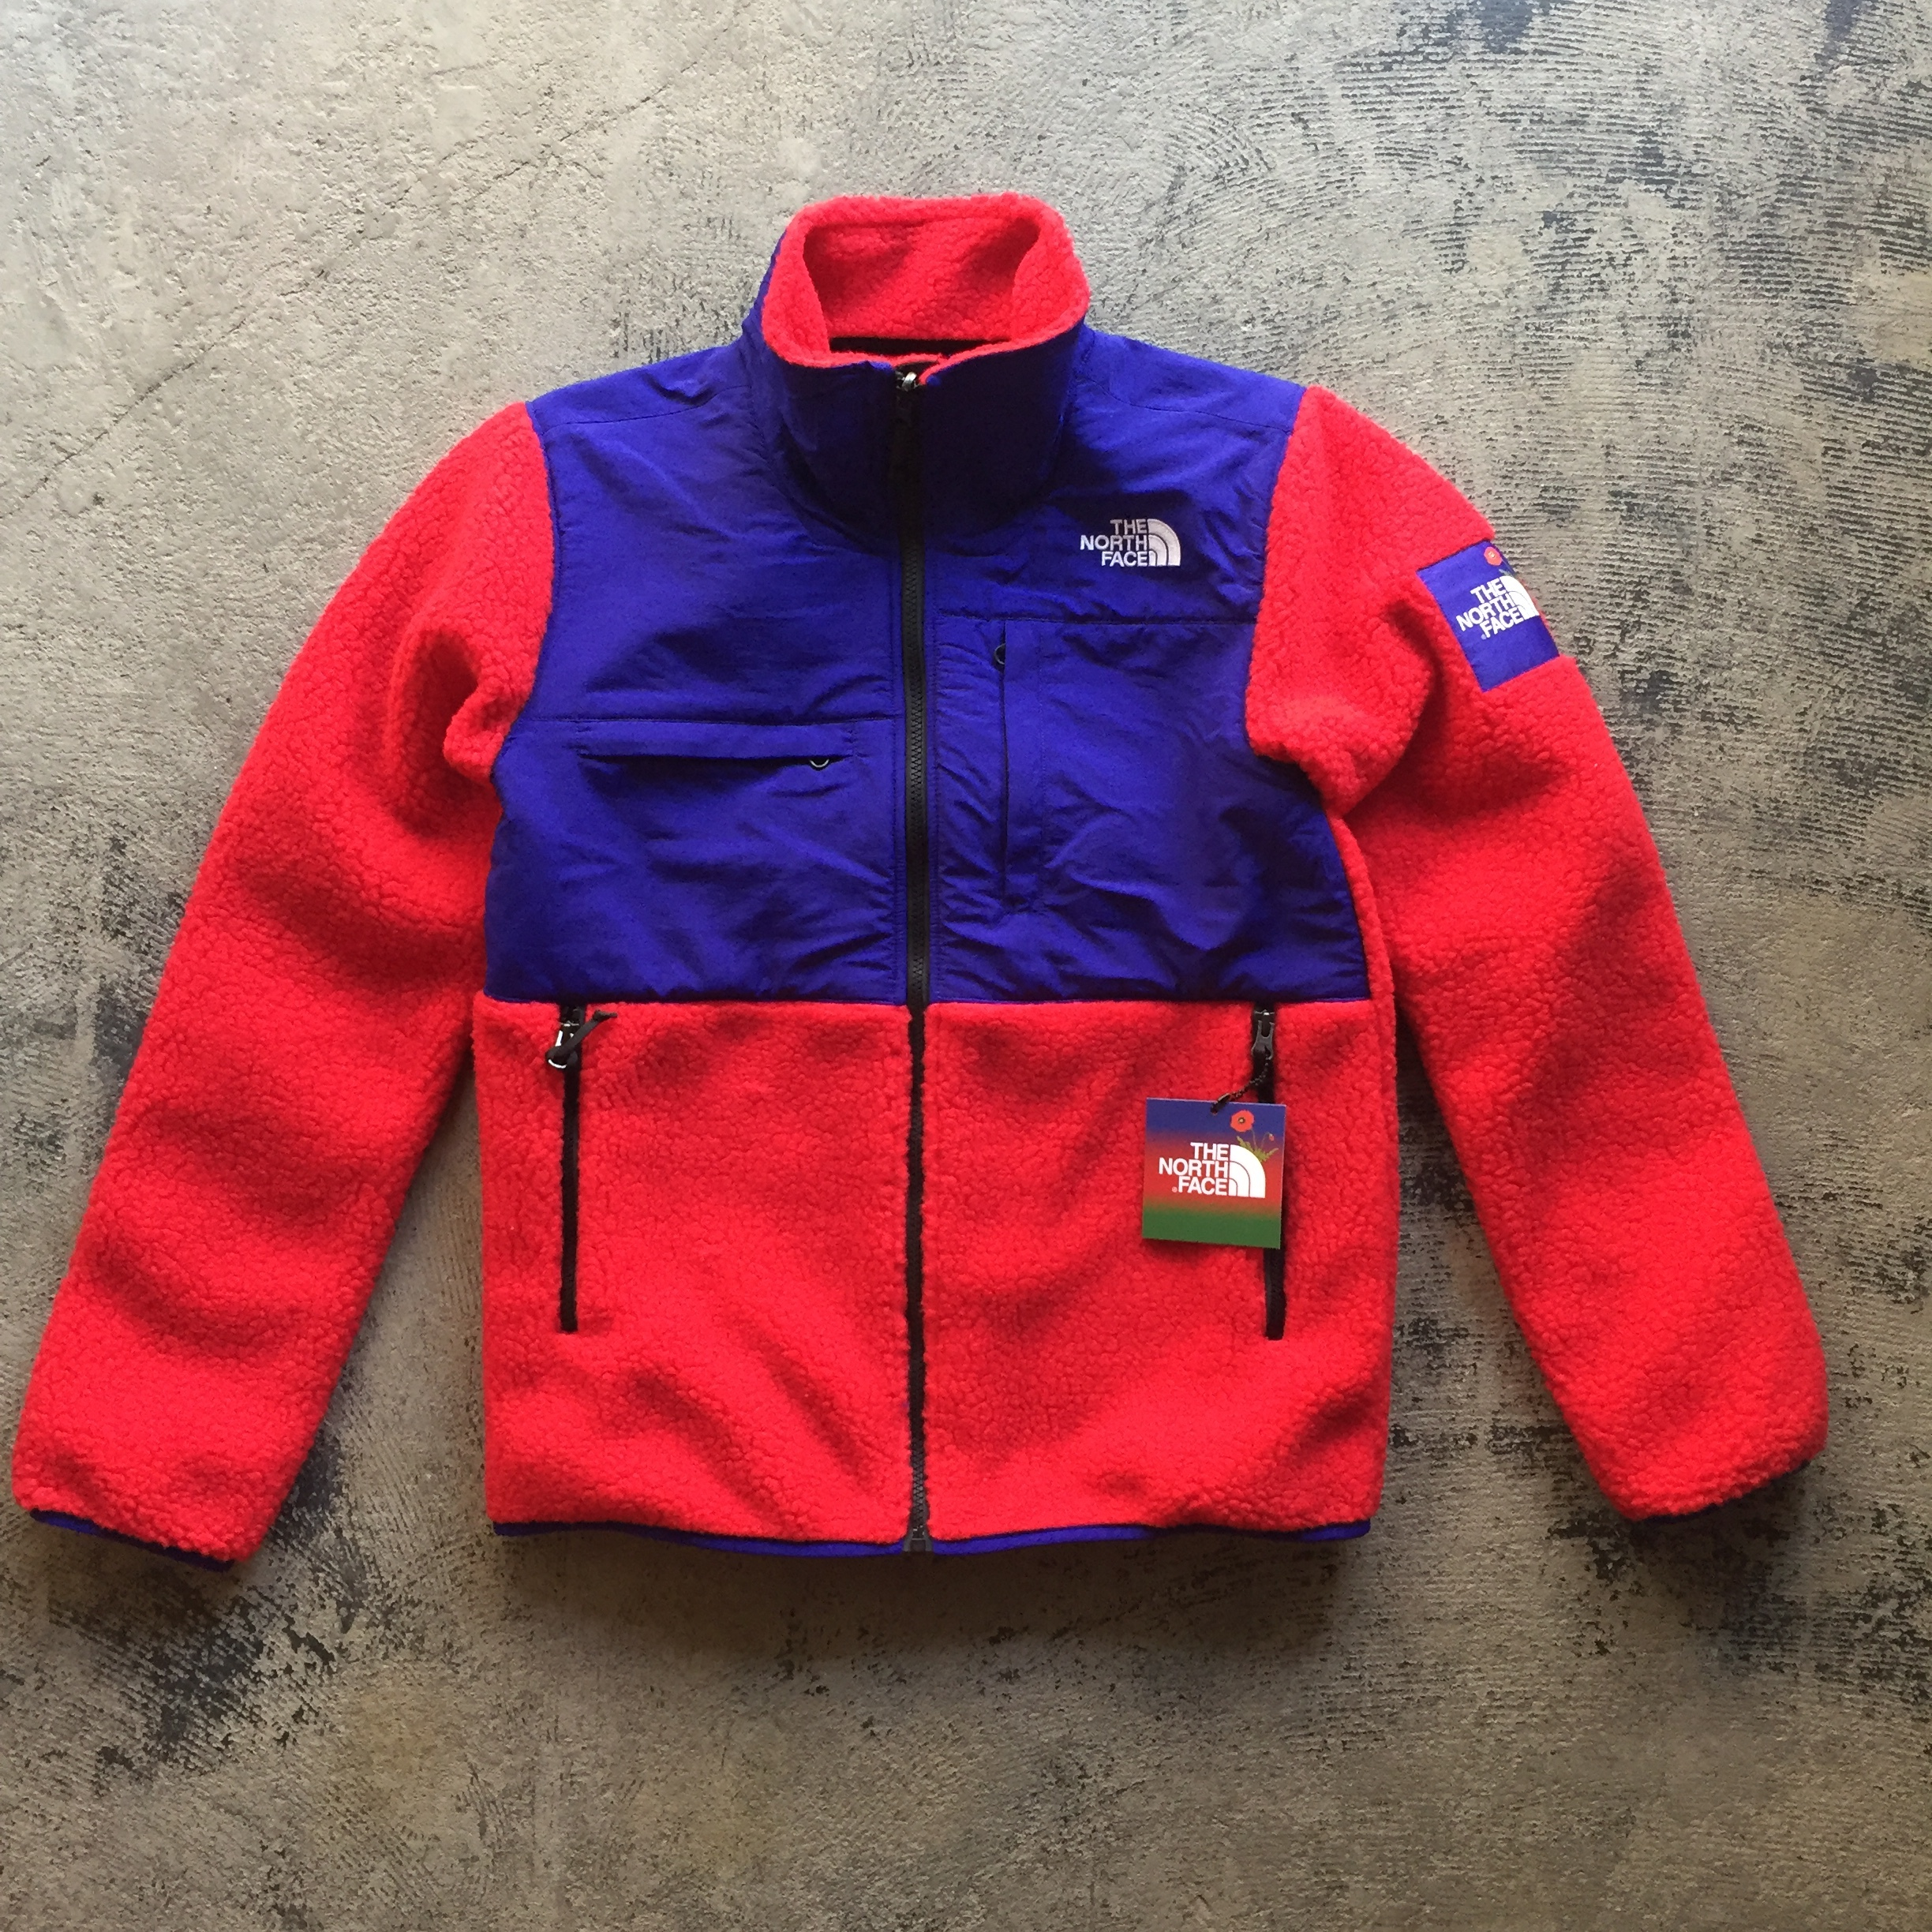 The North Face X Nordstrom Denali Jacket Diggin Works